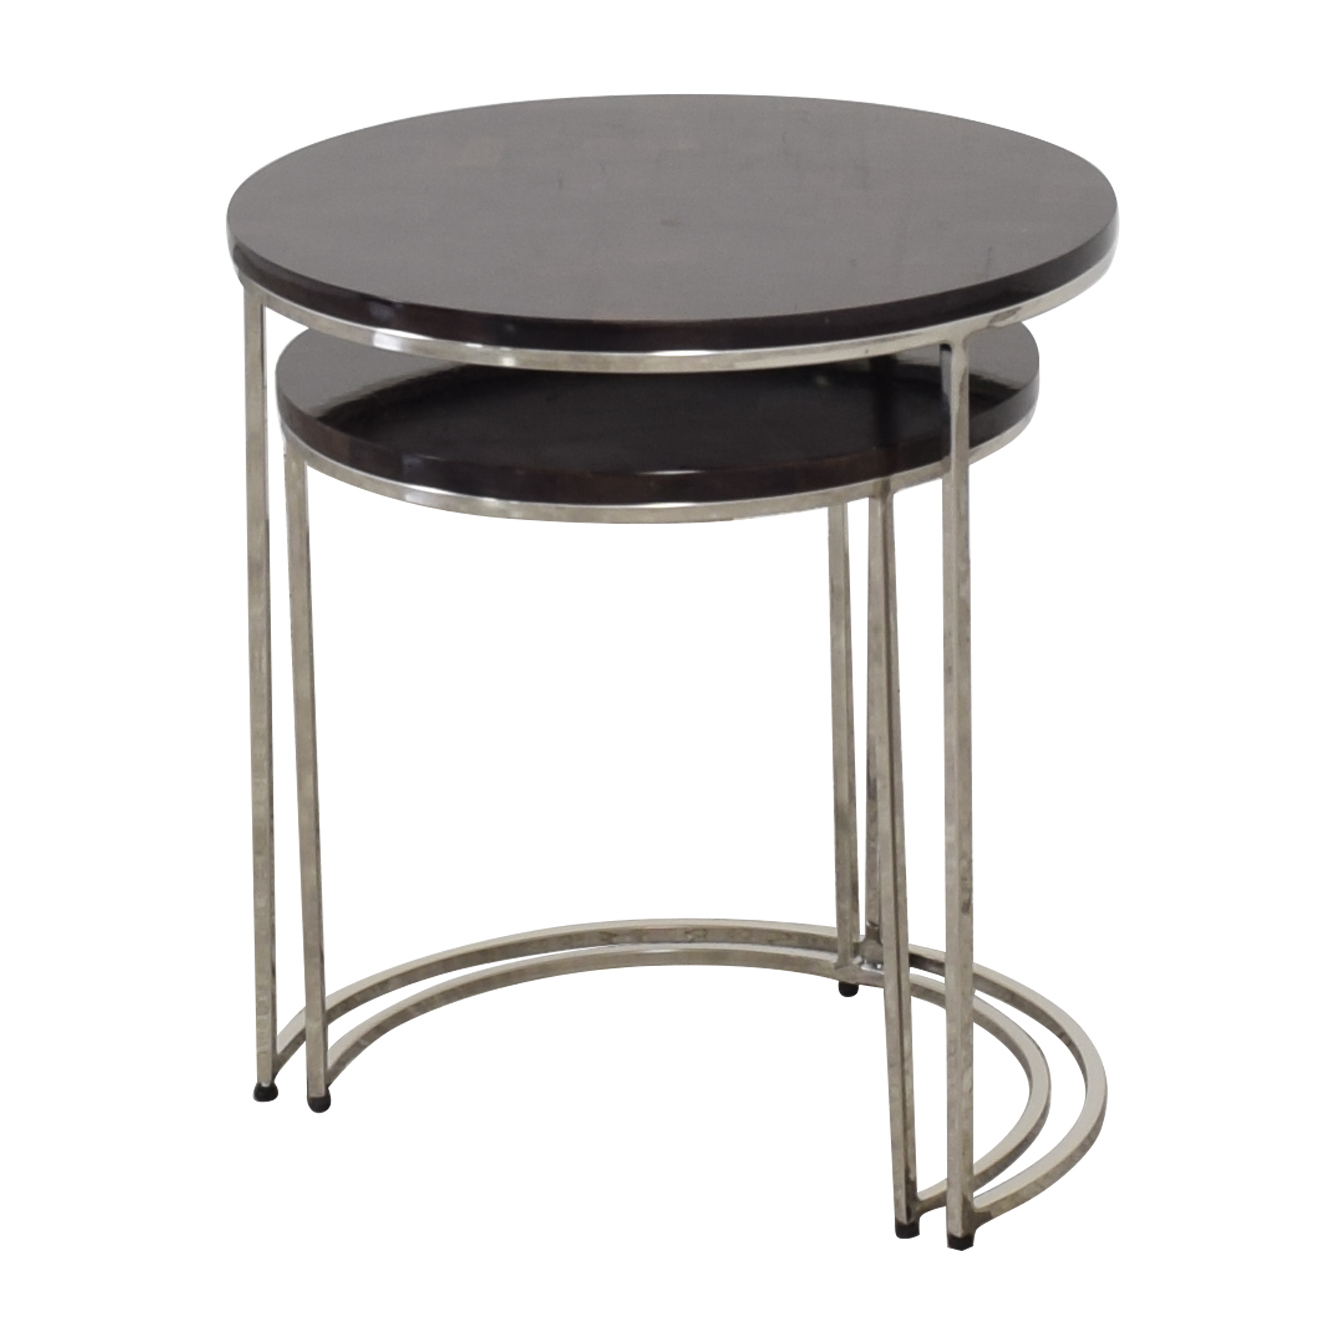 Williams Sonoma Williams Sonoma Antigua Pen Shell Nesting Tables nyc